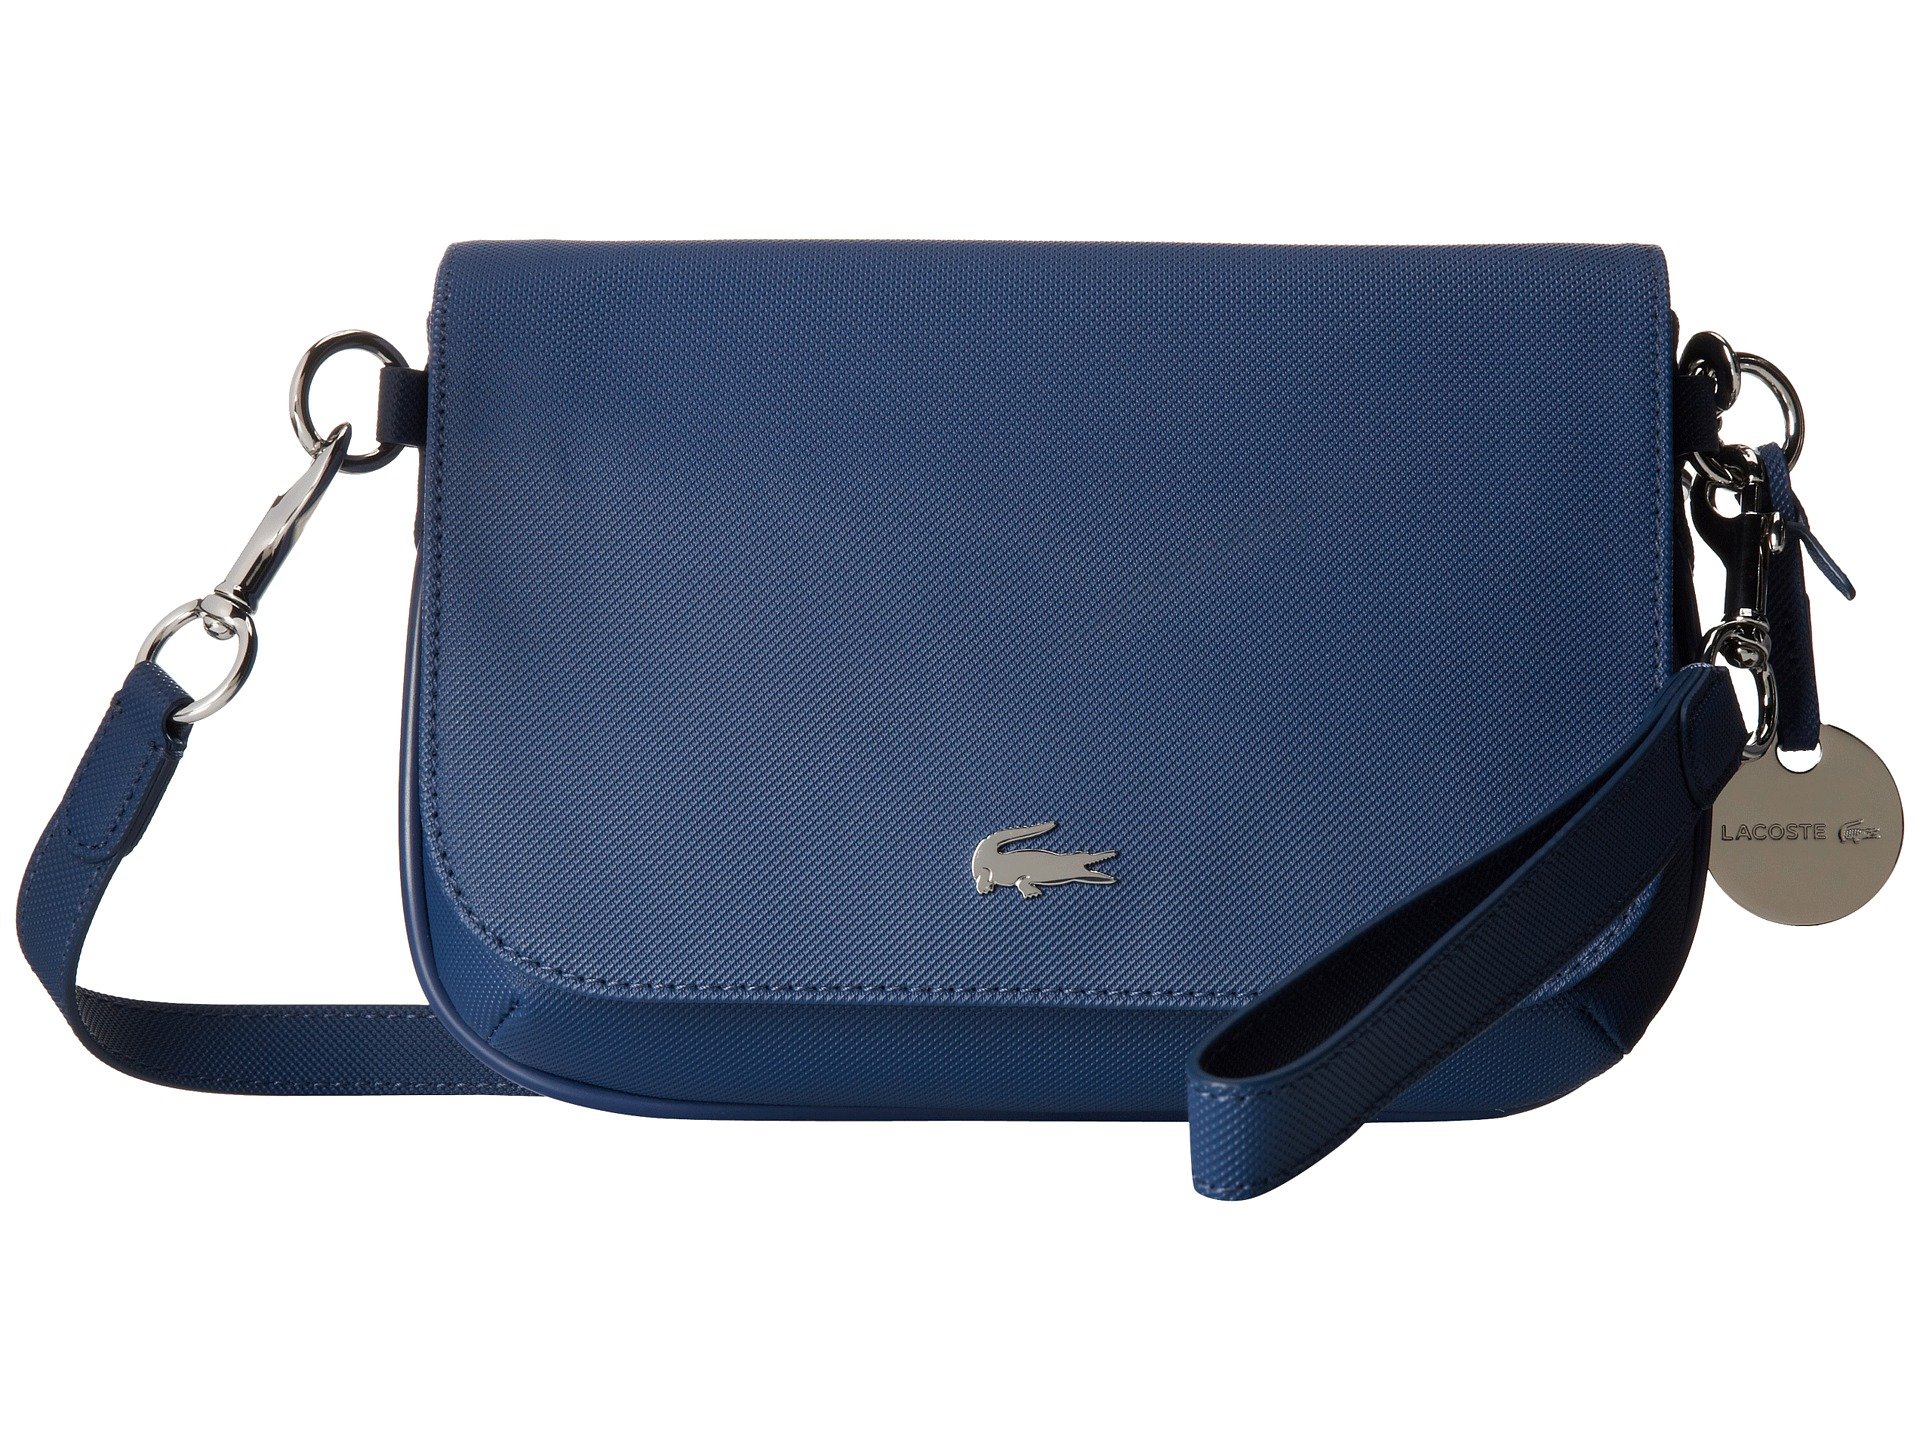 eac04e6086 Lacoste Daily Classic Crossover Bag in Blue - Lyst